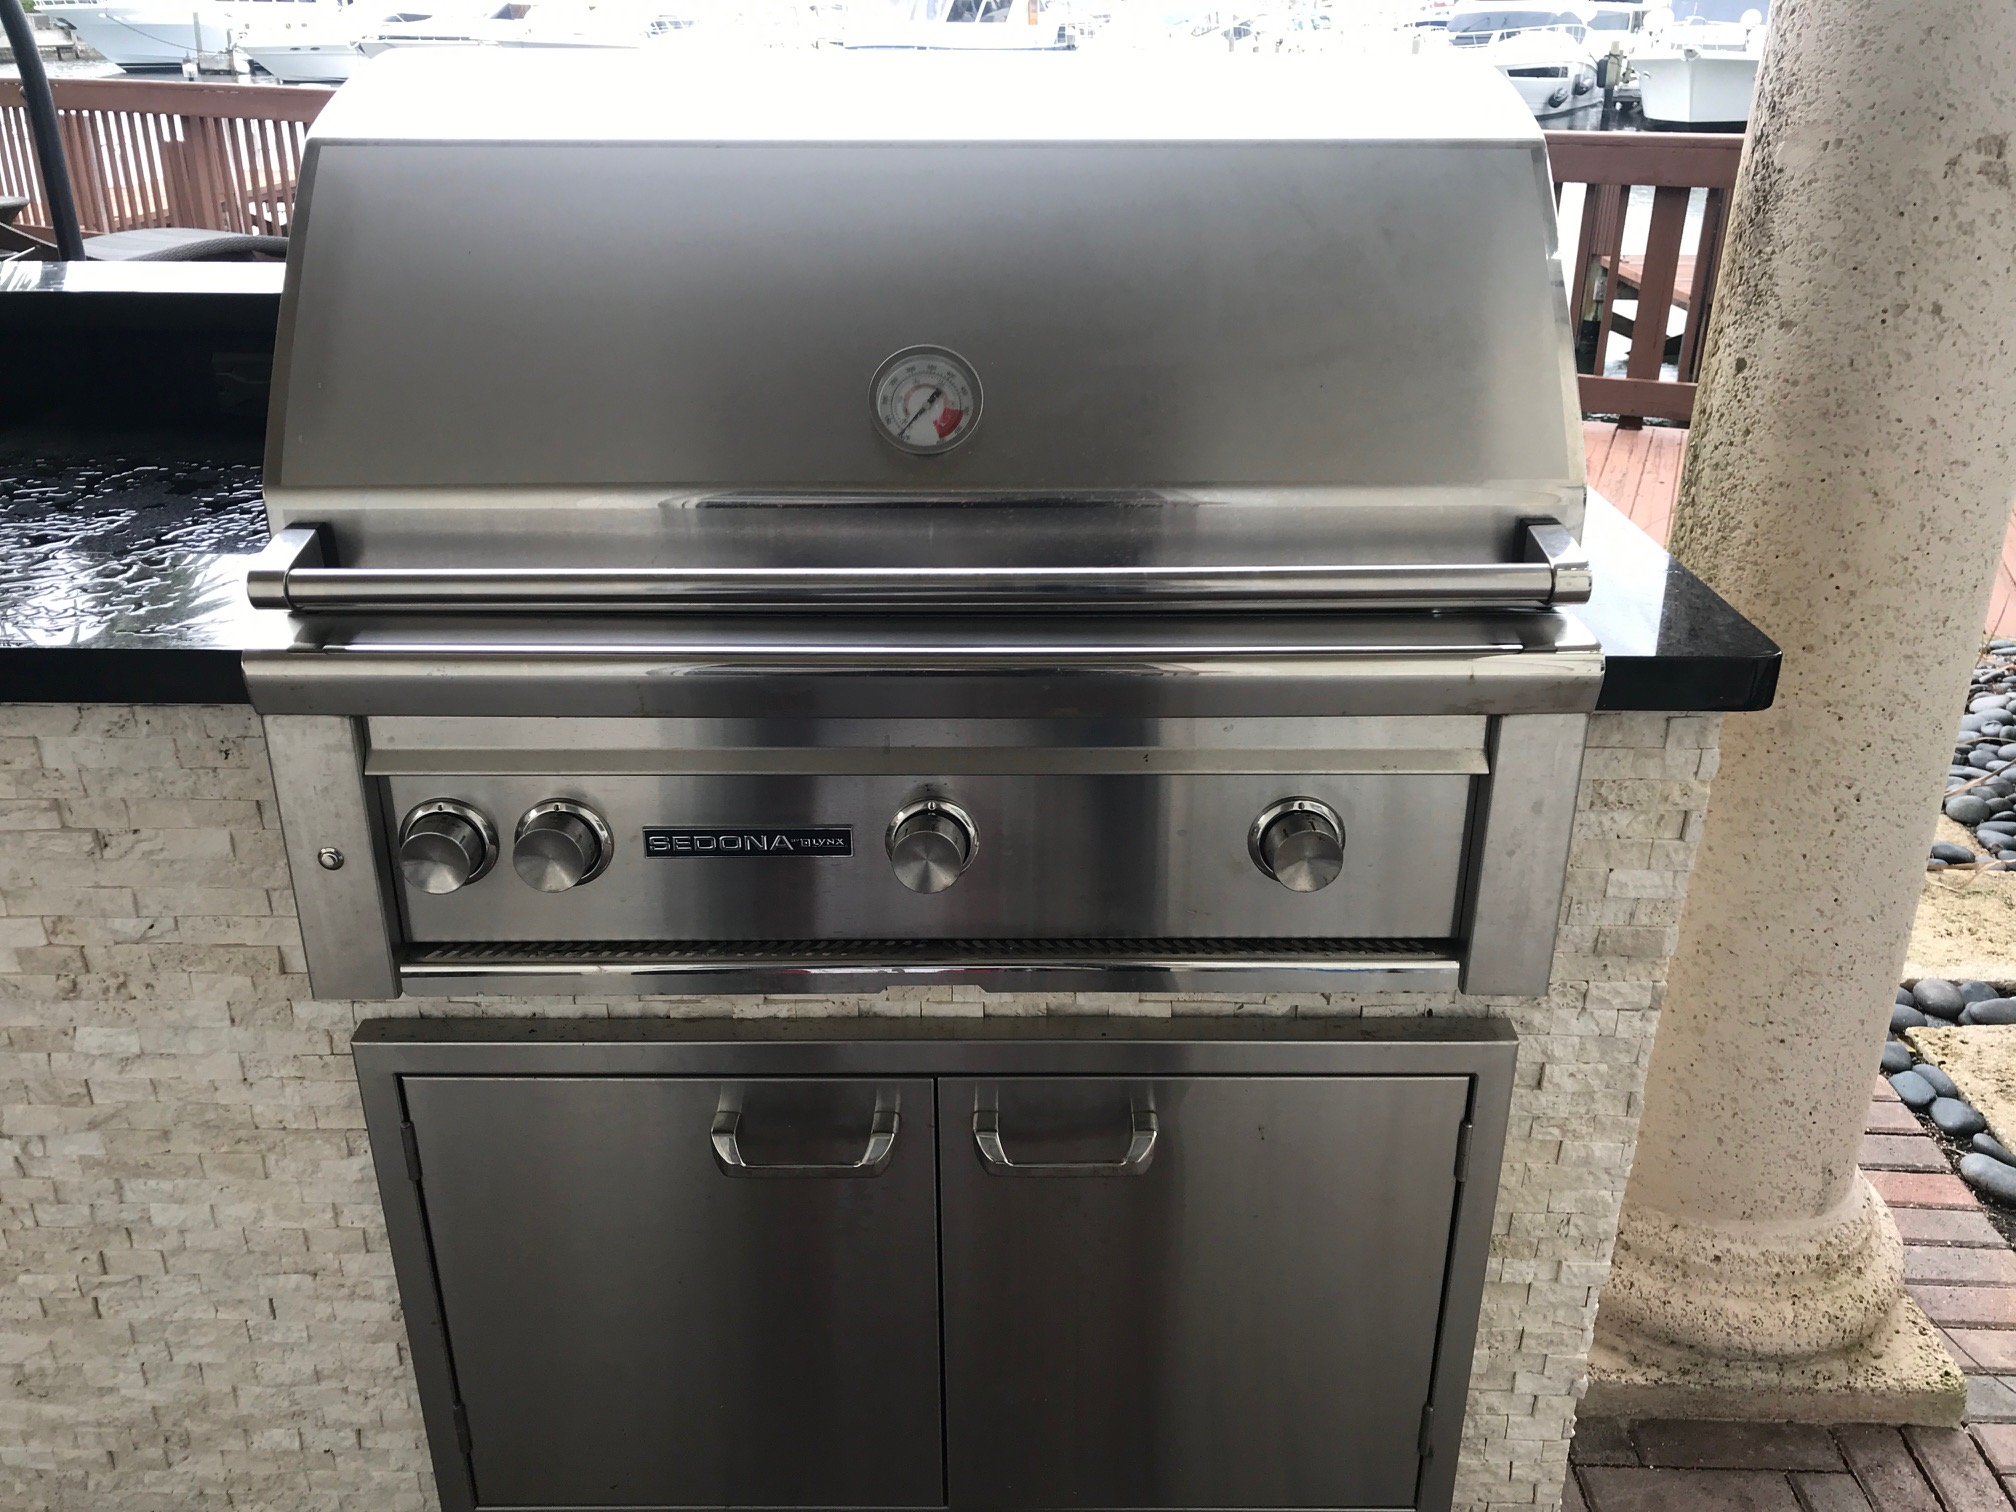 Grill Repair Replace Igniter Module On A Sedona By Lynx